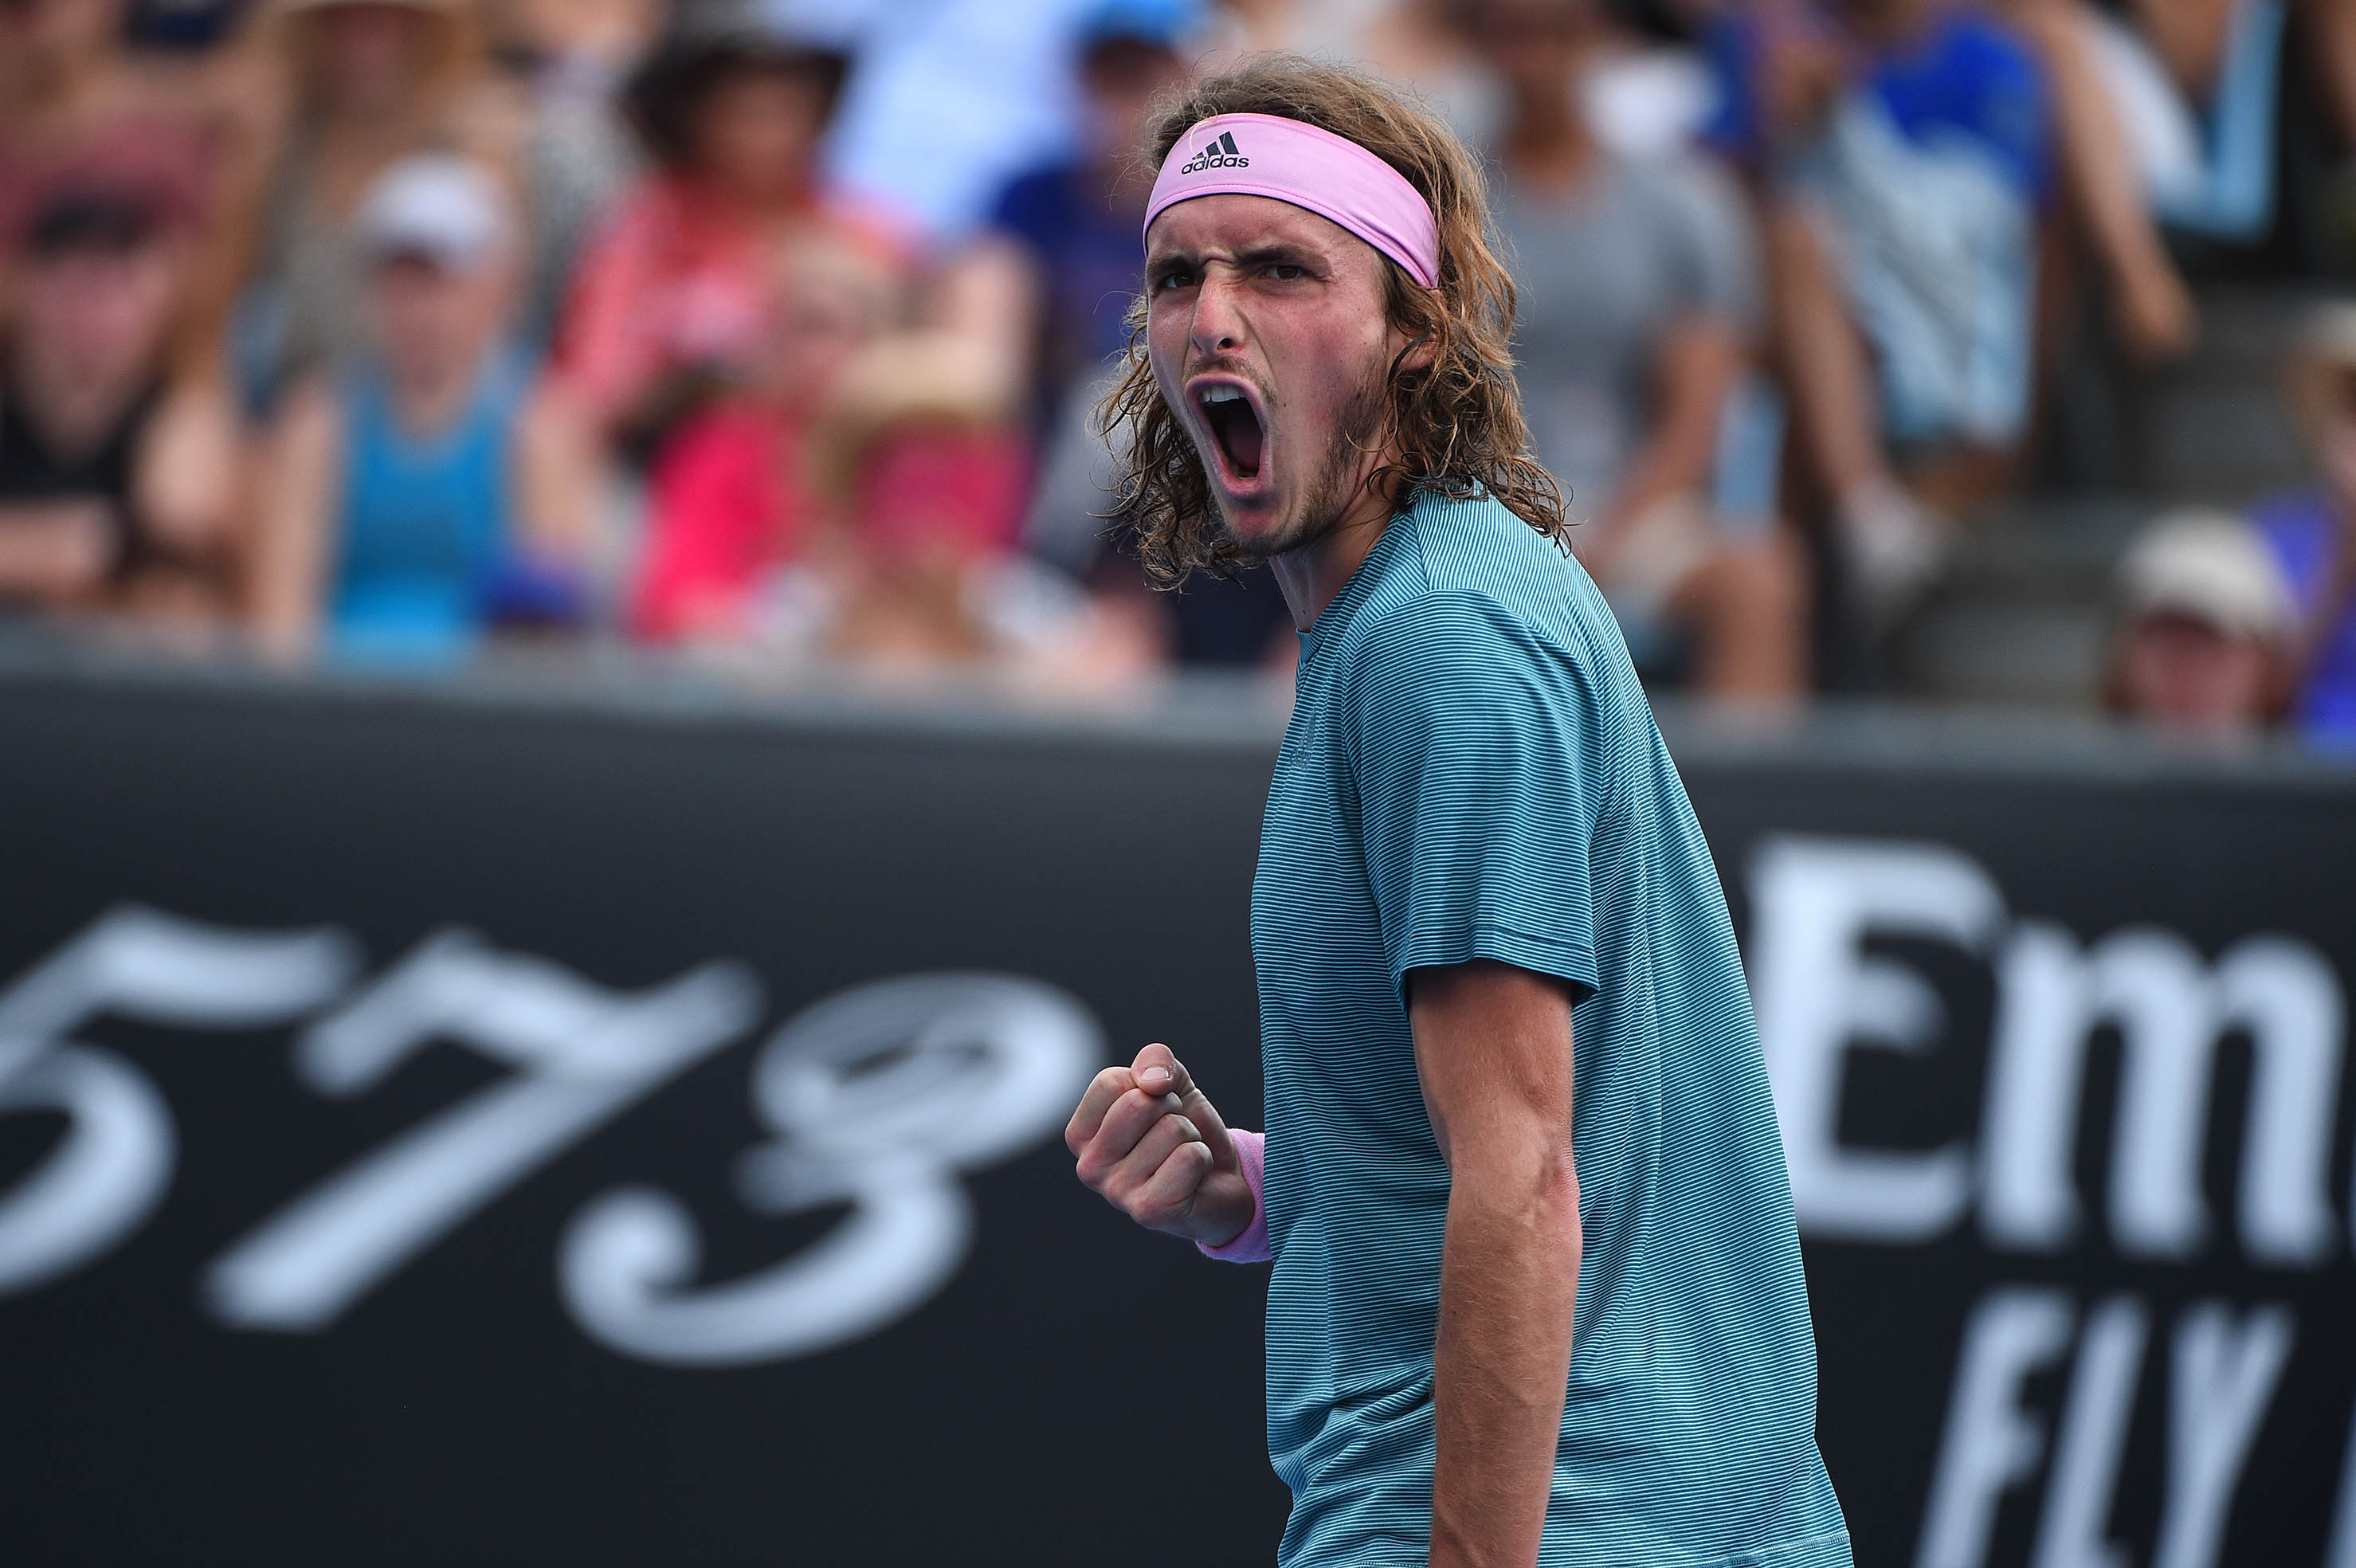 Stefanos Tsitsipas roaring during his second round match at the Australian Open 2019